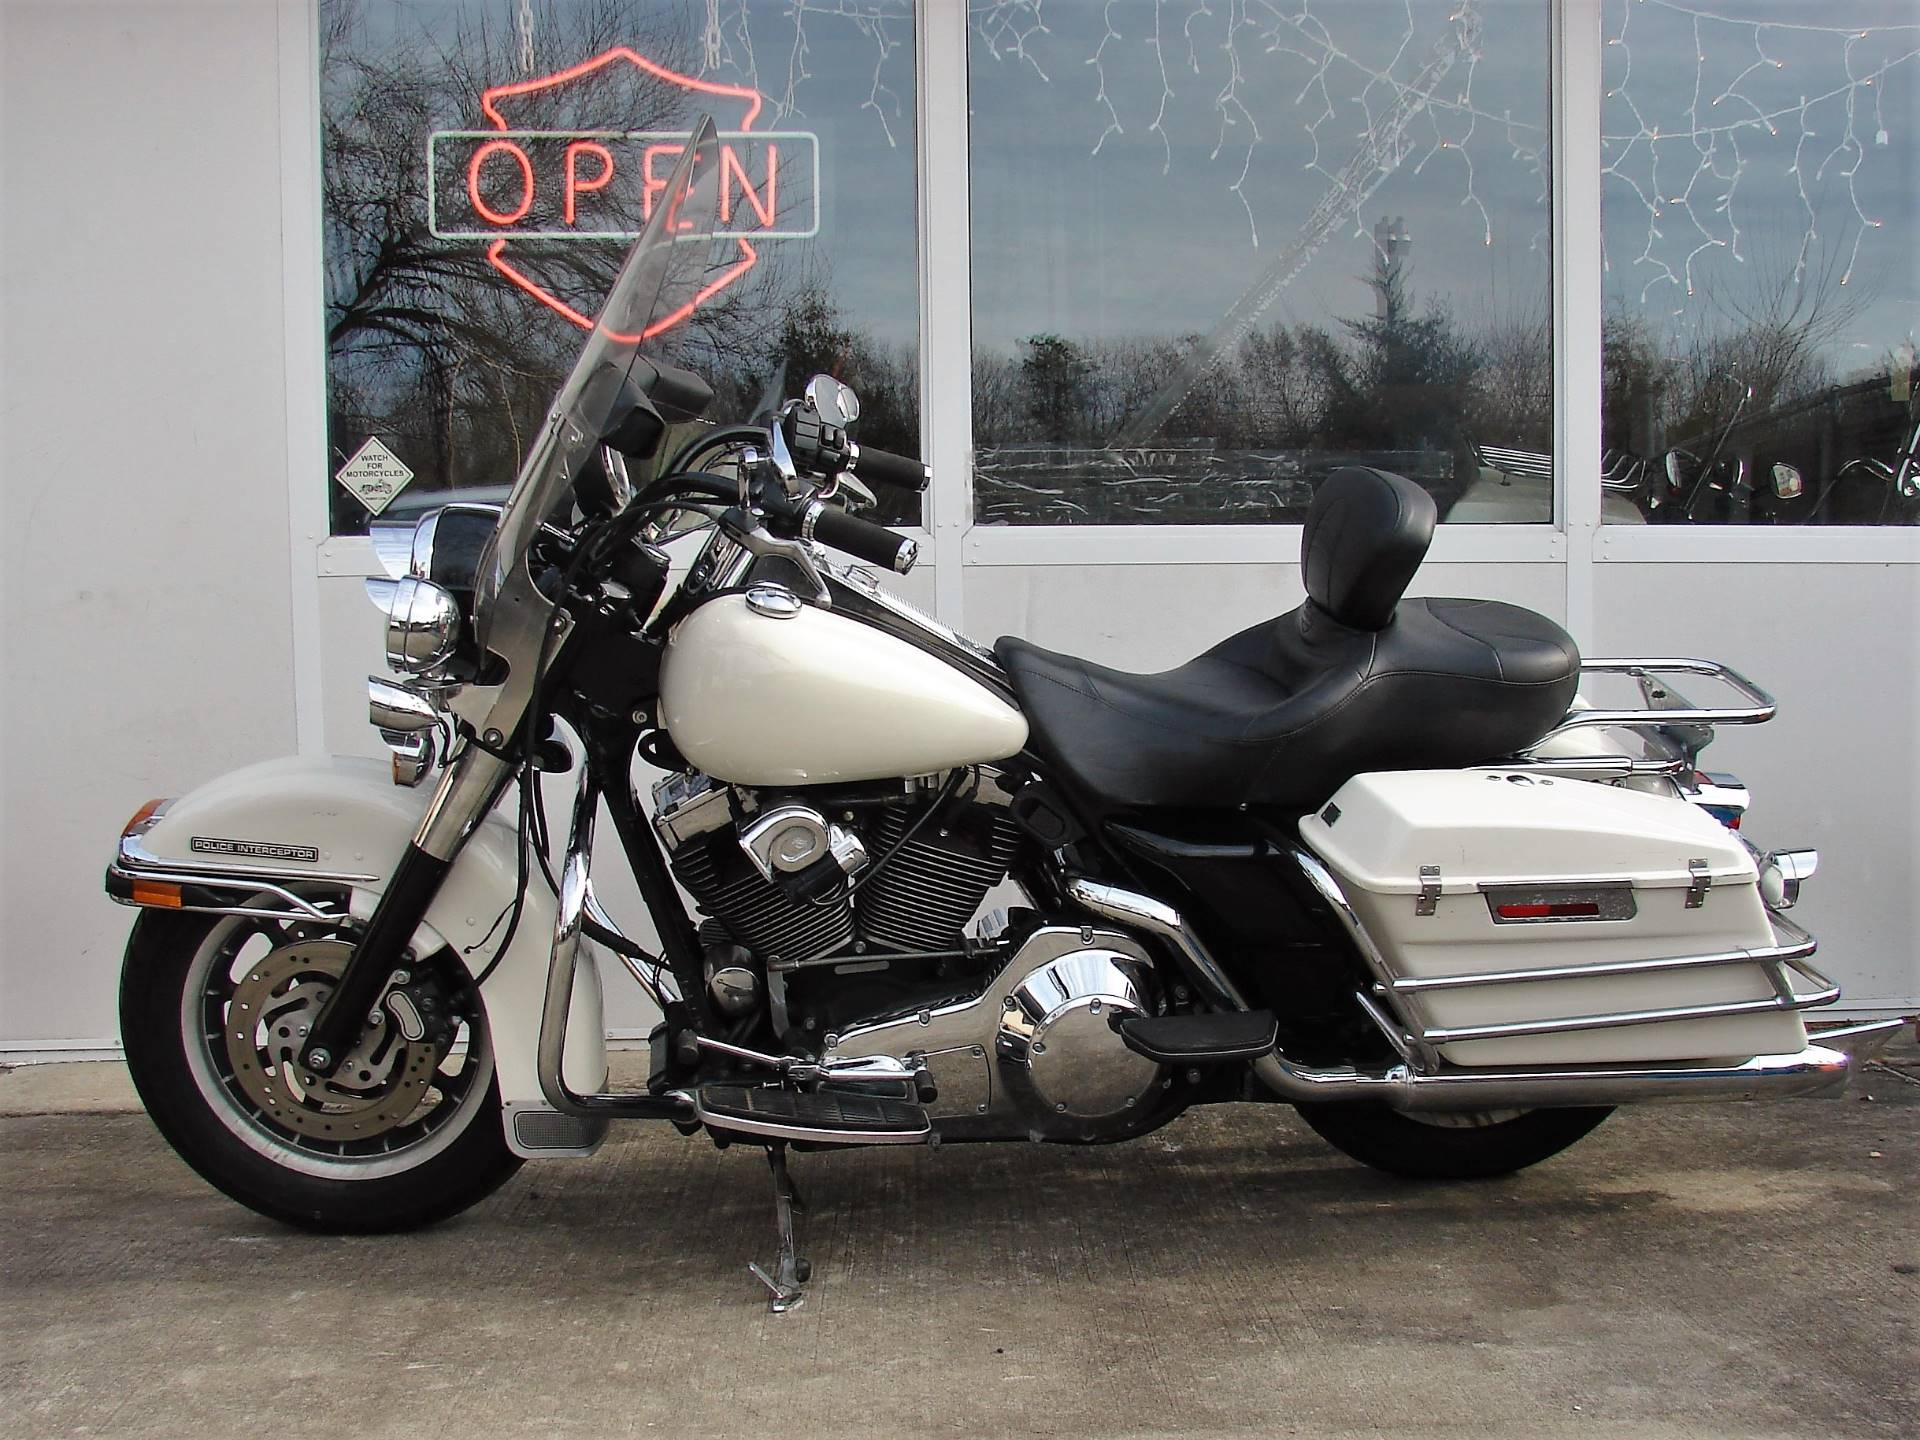 2001 Harley-Davidson FLHTPI Electra Glide (Police Special) - WHITE in Williamstown, New Jersey - Photo 10